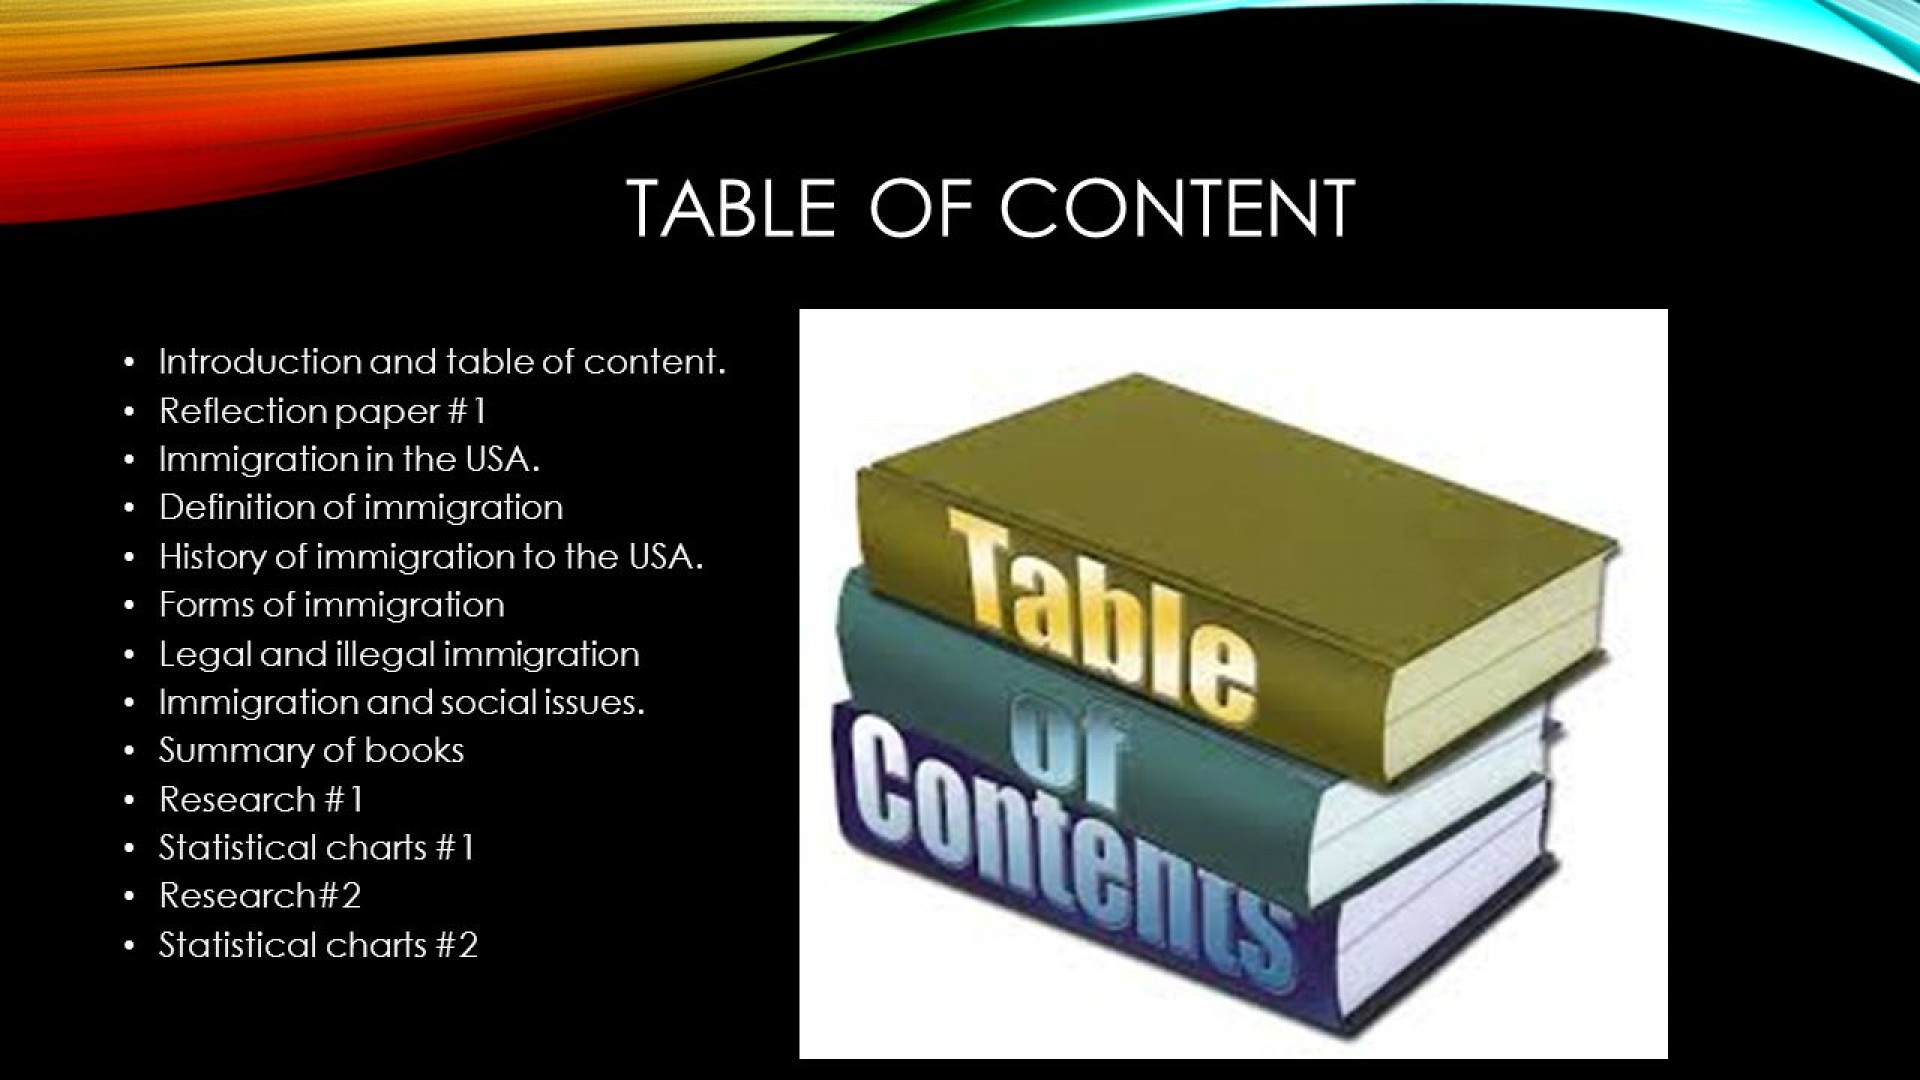 013 Immigration Research Paper Introduction Slide 2 Exceptional 1920